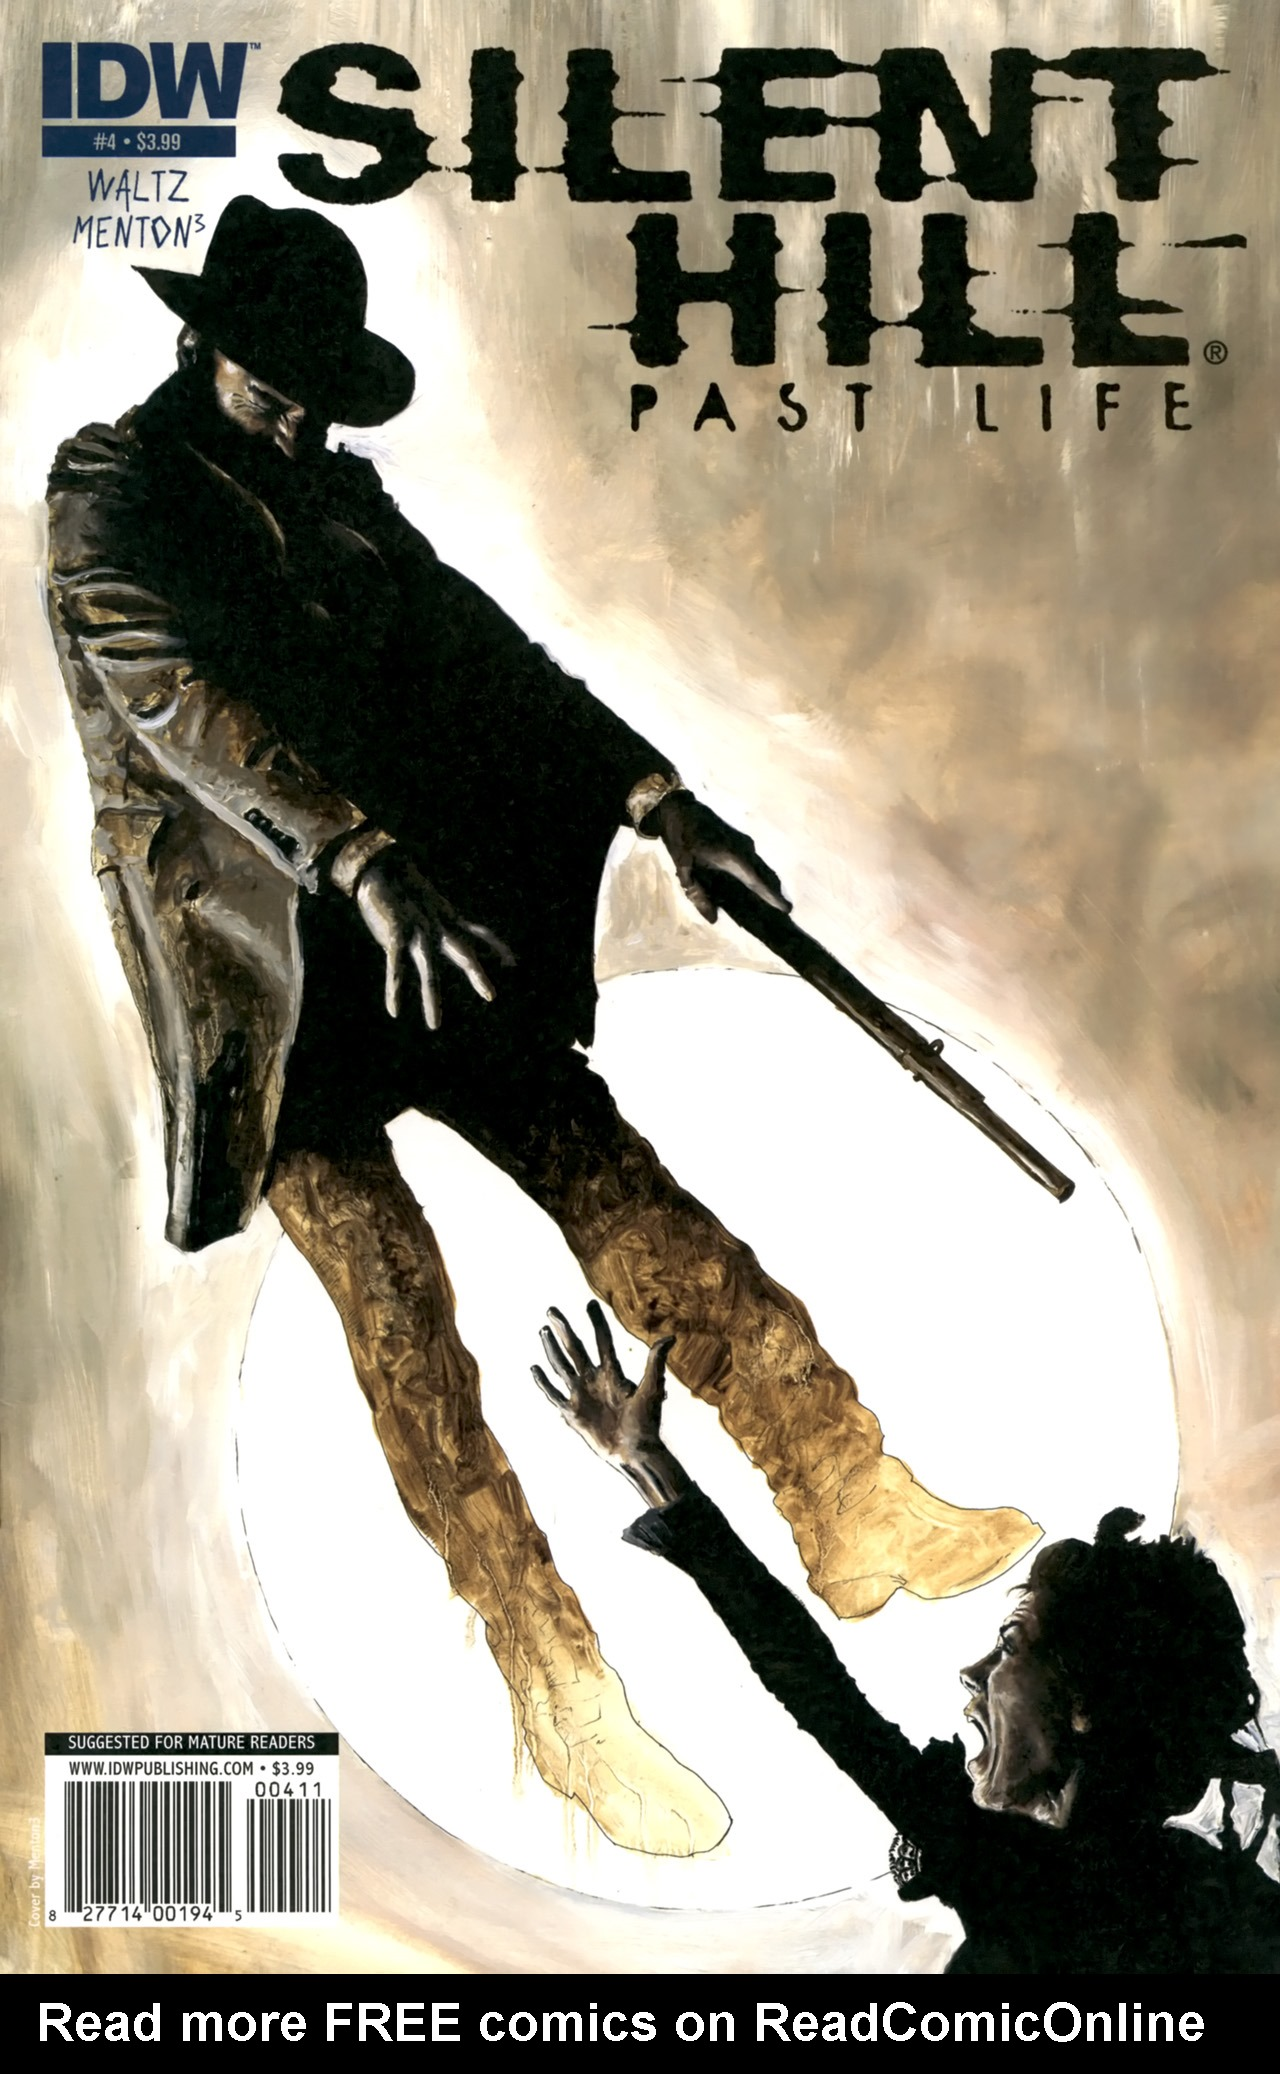 Read online Silent Hill: Past Life comic -  Issue #4 - 1